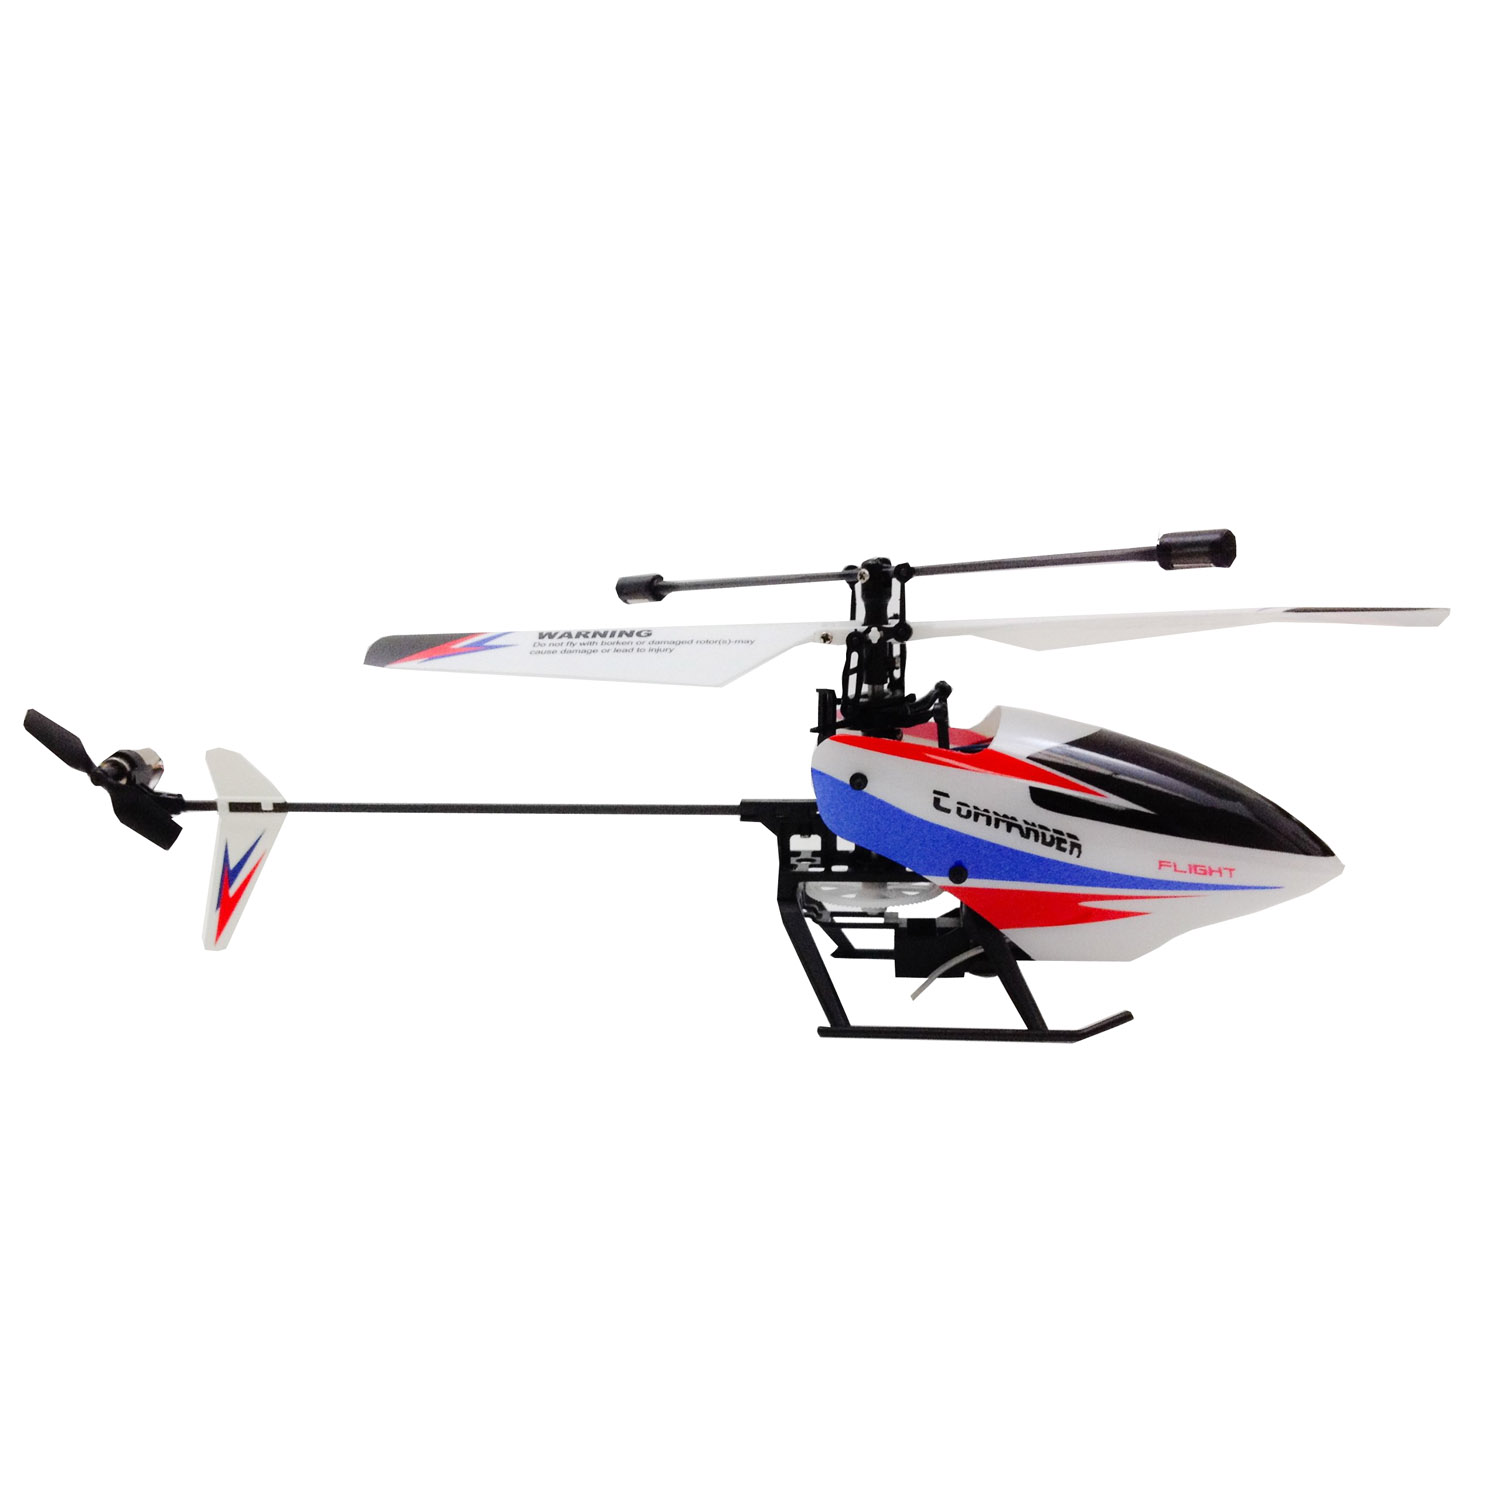 Wltoys V911 Pro Version 2 2.4G 4 Channel Fixed Pitch Single Rotor Helicopter - Upgrade(Orange & Blue) wltoys v911 10 replacement diy abs carbon fiber rod tail rotor station for r c helicopter black